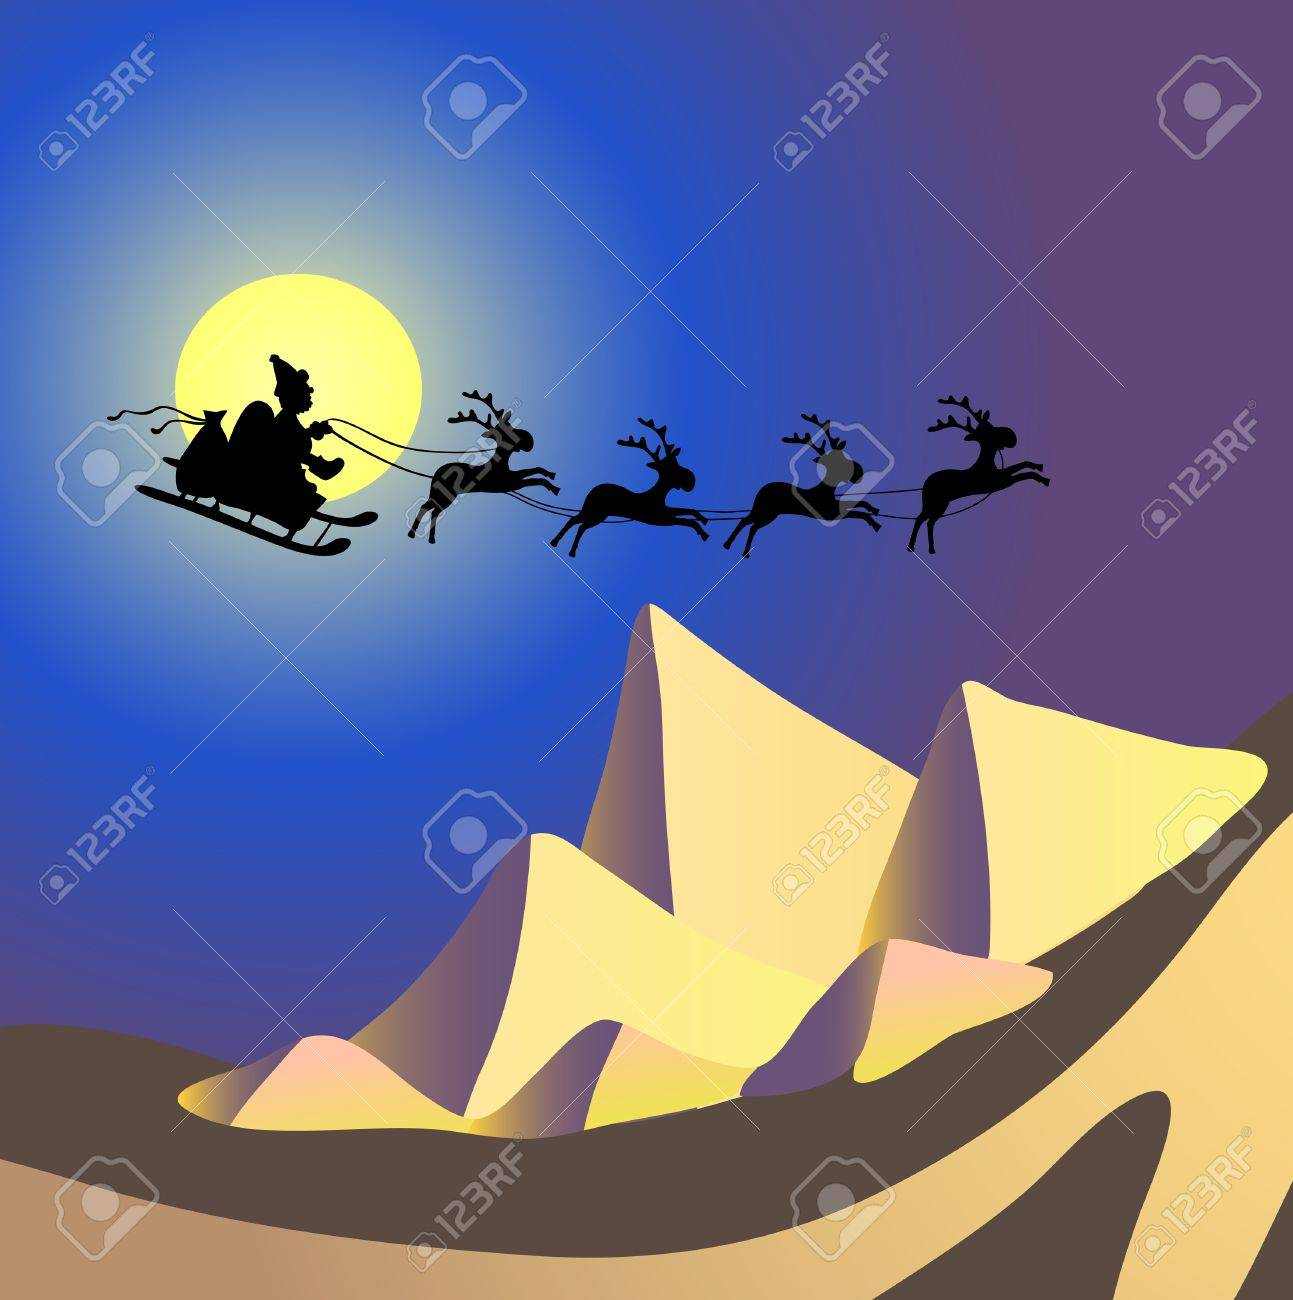 illustration of Santa Claus with reindeers flying over Egypt Stock Vector - 9727434